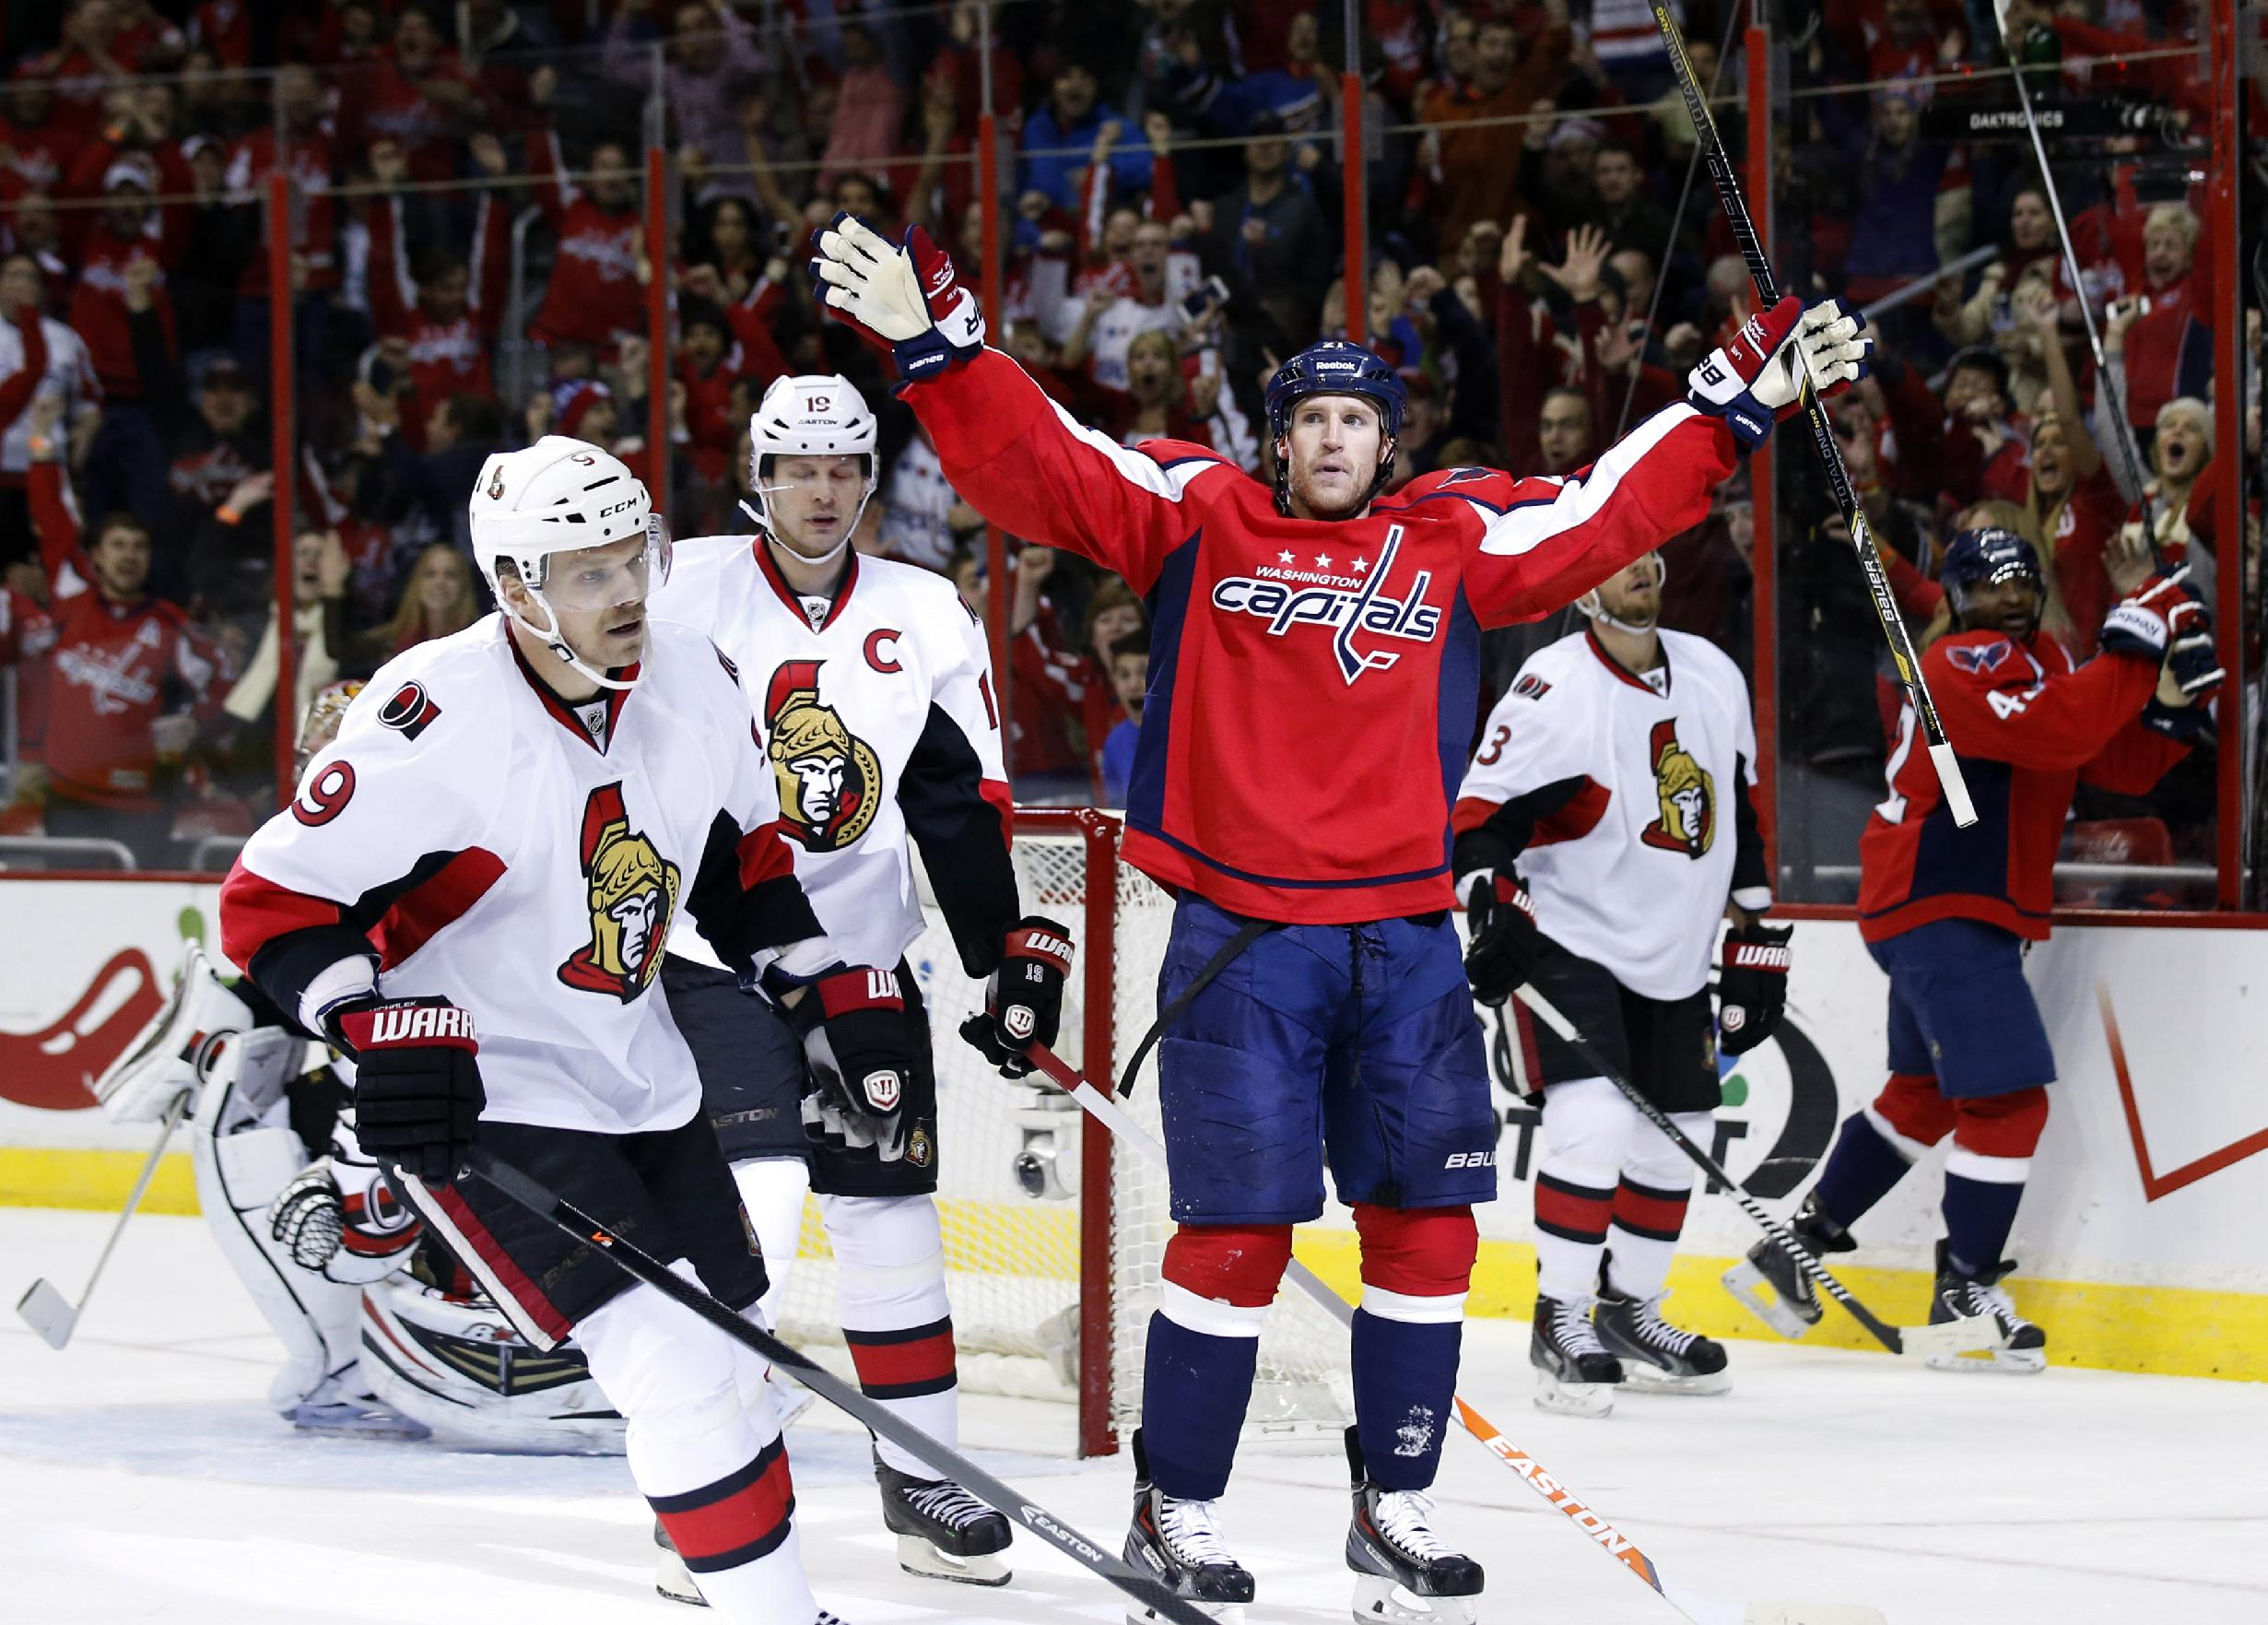 Washington Capitals center Brooks Laich (21) celebrates his goal as Ottawa Senators left wing Milan Michalek (9), from the Czech Republic, and center Jason Spezza (19) skate nearby in the first period of an NHL hockey game, Wednesday, Nov. 27, 2013, in Washington